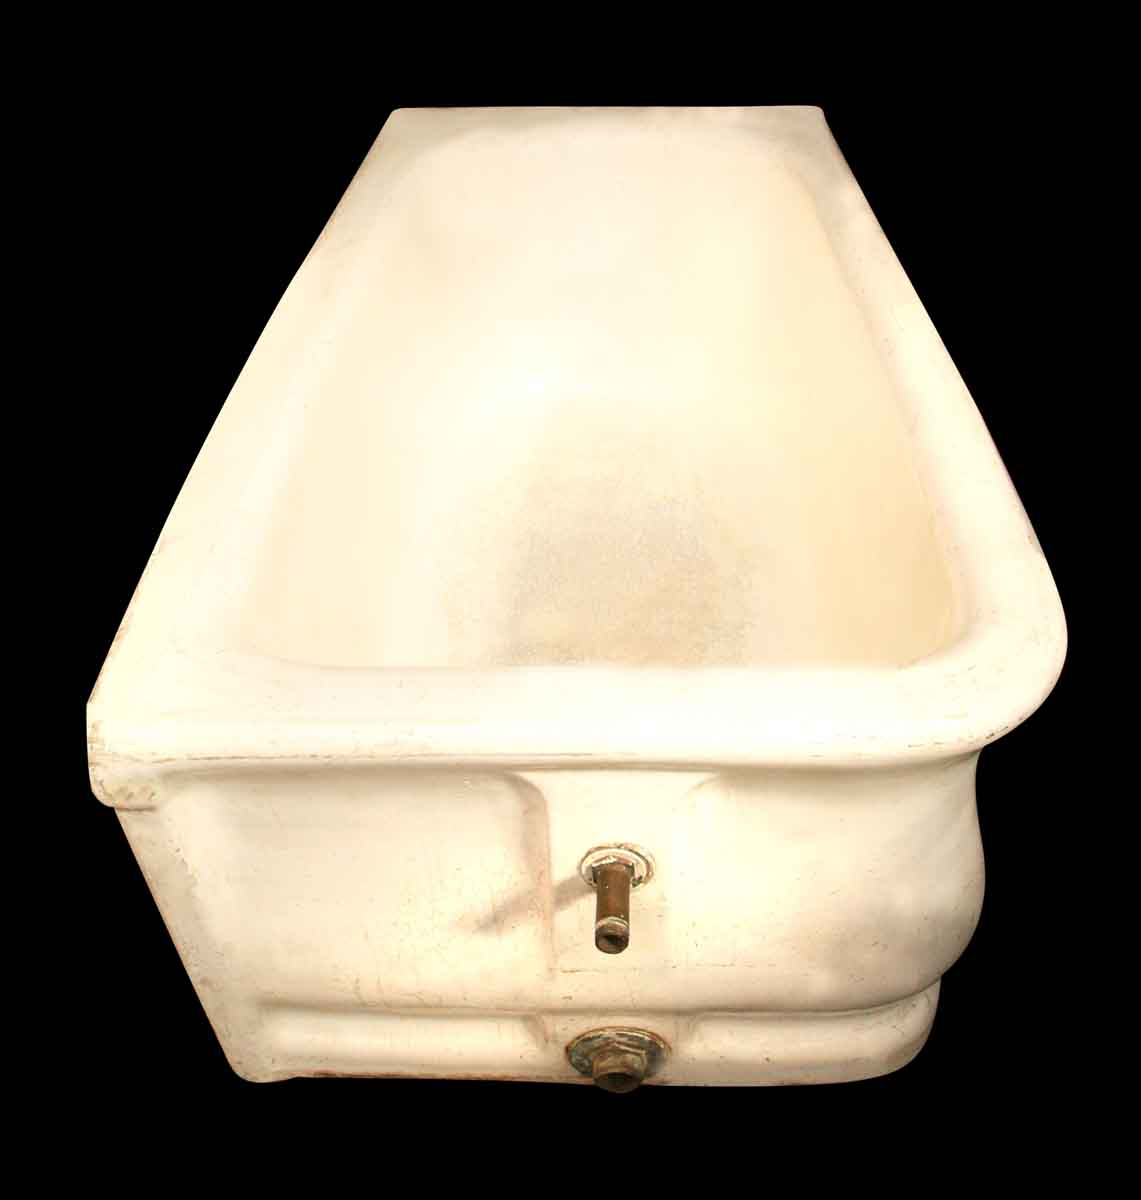 Beautiful Earthenware Skirt Tub with Crazed Porcelain Glaze